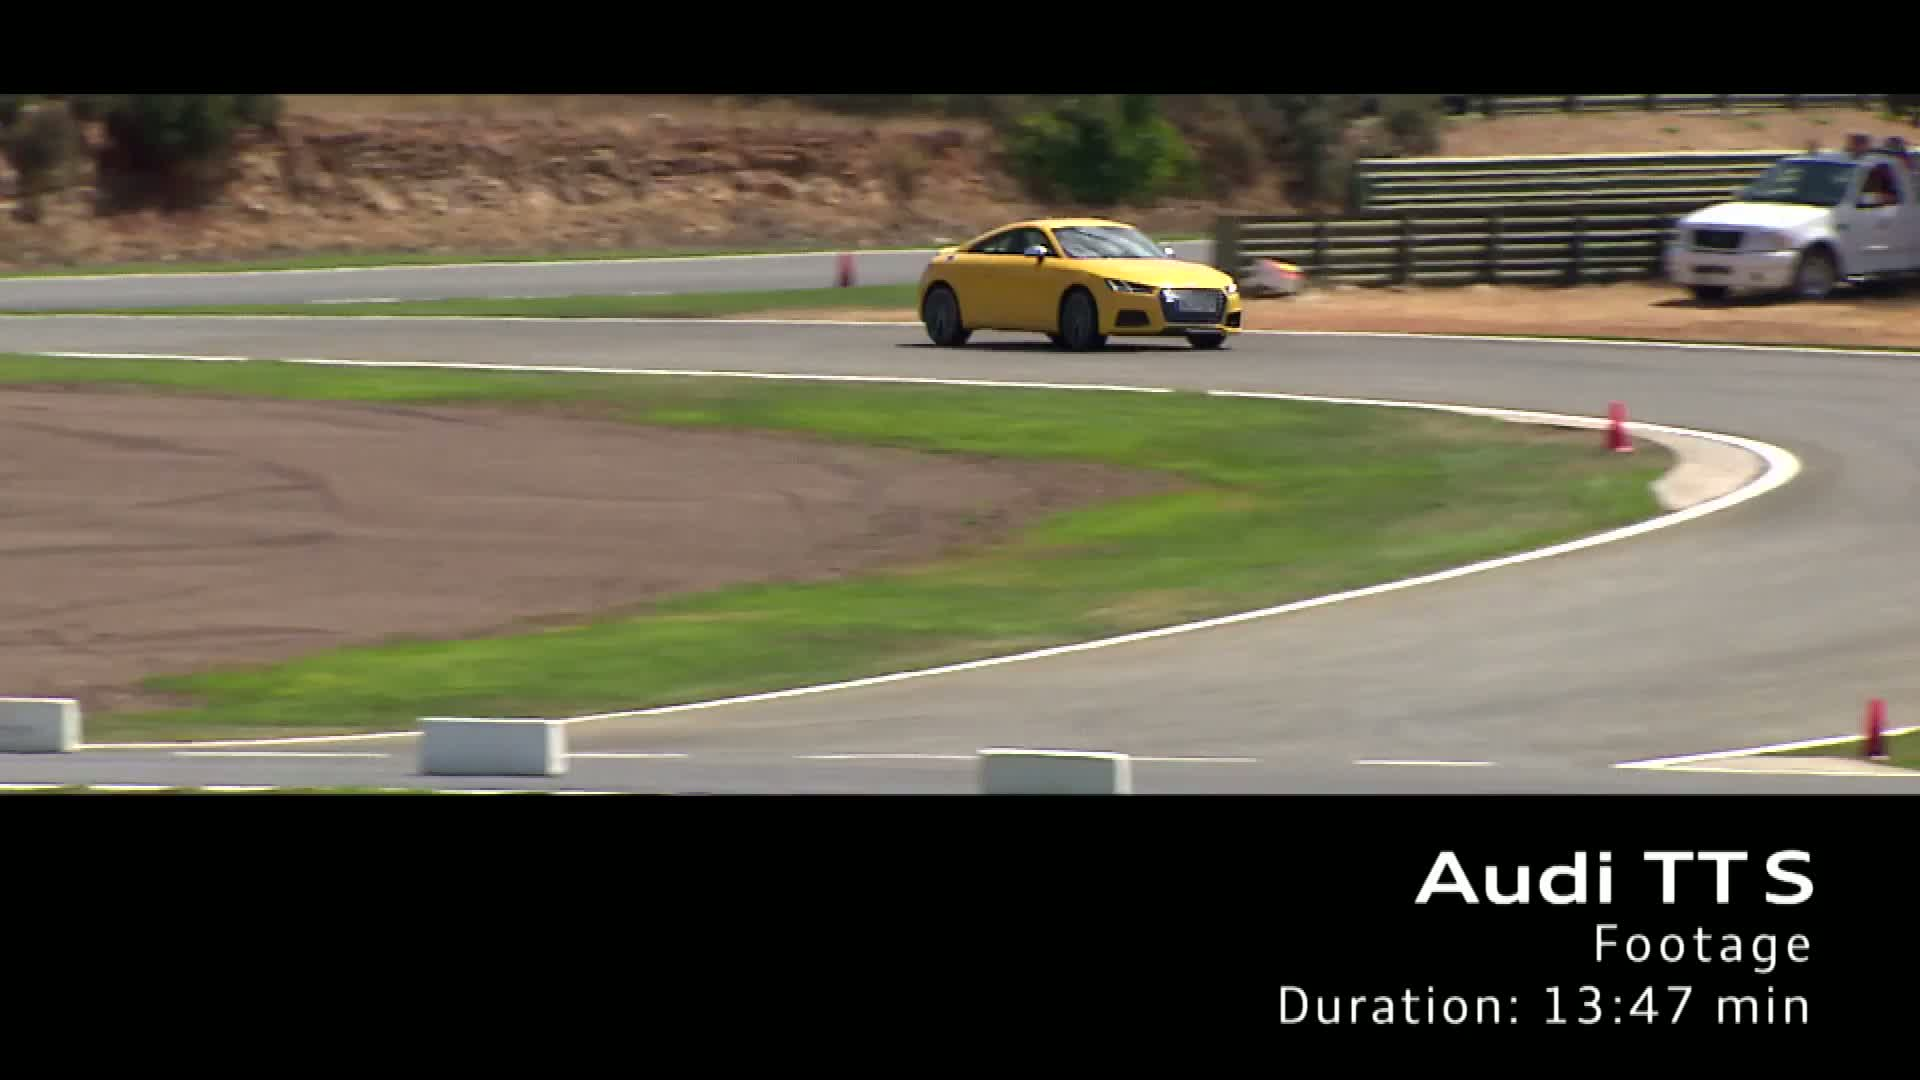 The Audi TTS Coupé - Footage